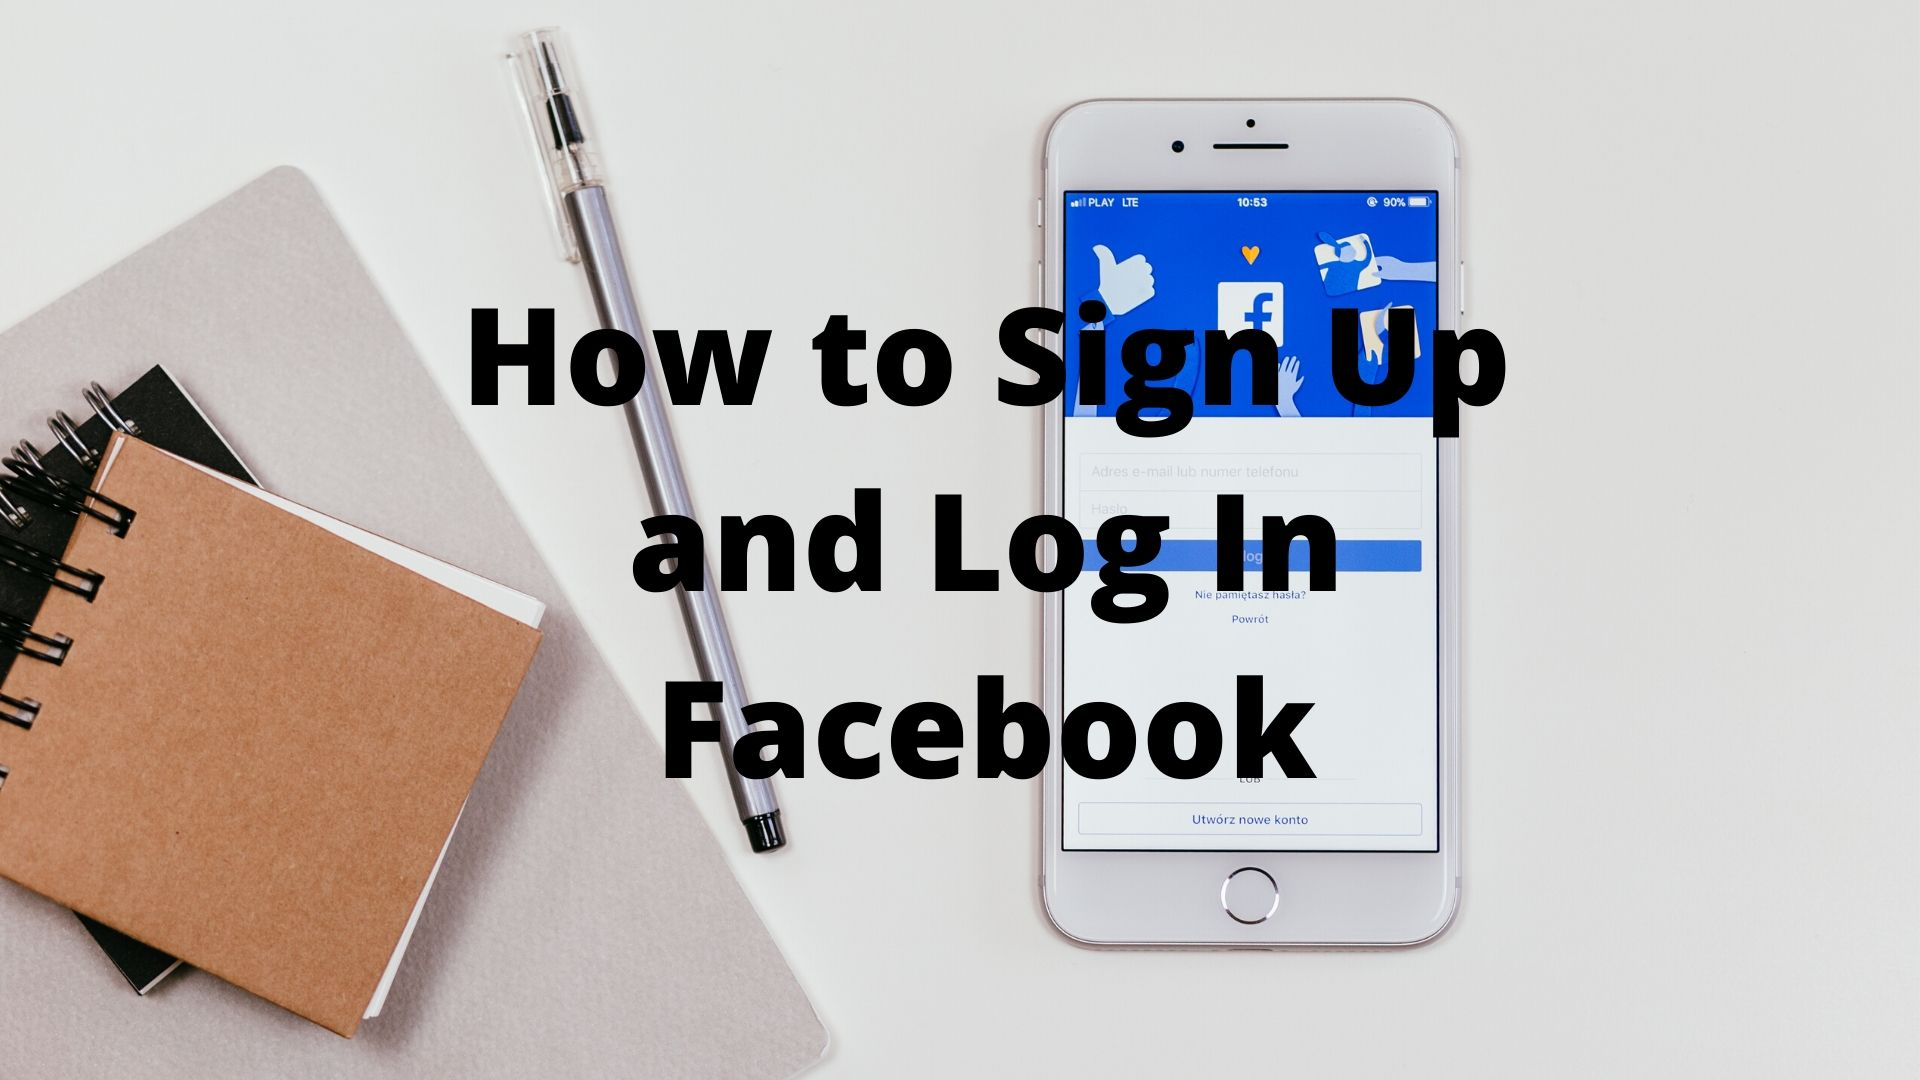 How to Sign Up and Log In Facebook